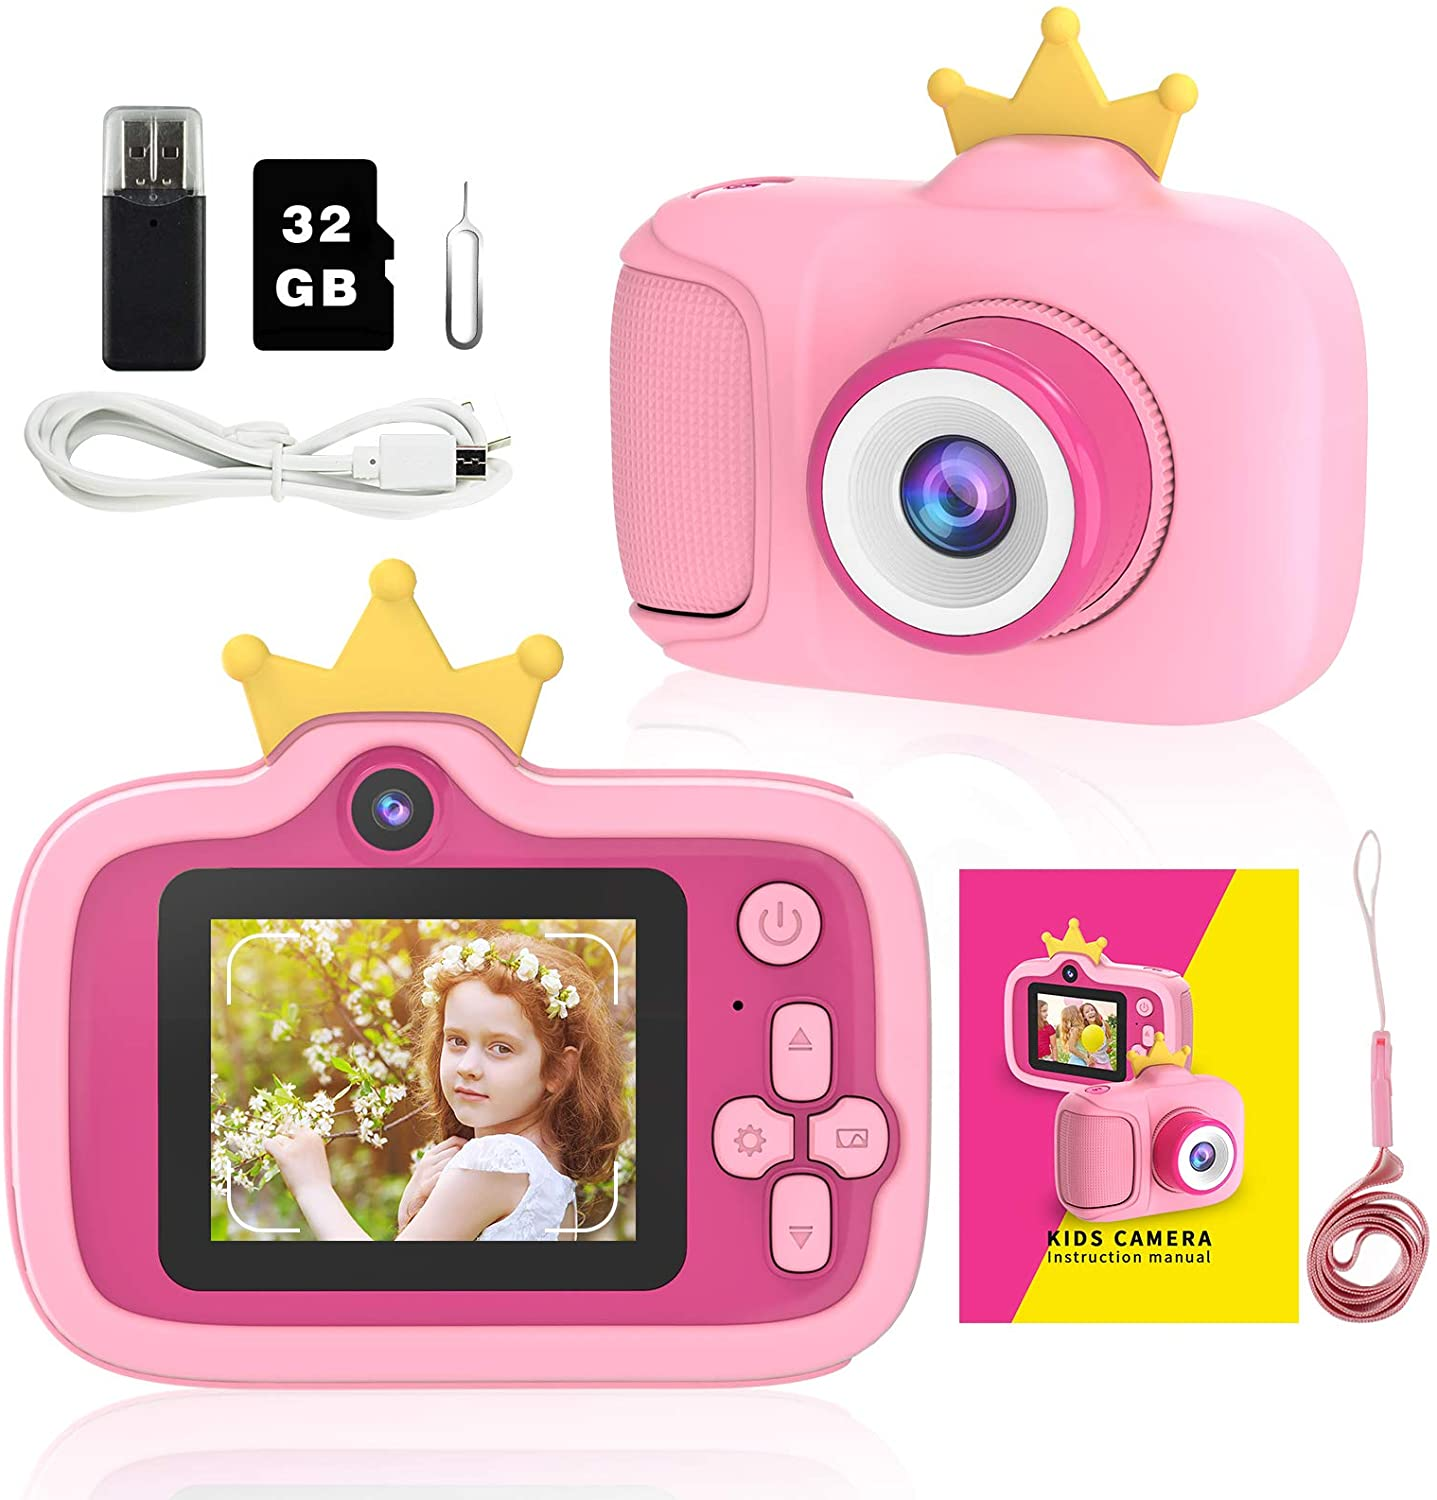 Kids Camera Digital Selfie HD Video for Girls Kids Portable Toddler Dual Camera with 1080p 32GB SD Card 2.0 Inch IPS Screen Christmas Birthday Gifts Toy Camera for Child 3-12 Year Old (Pink)